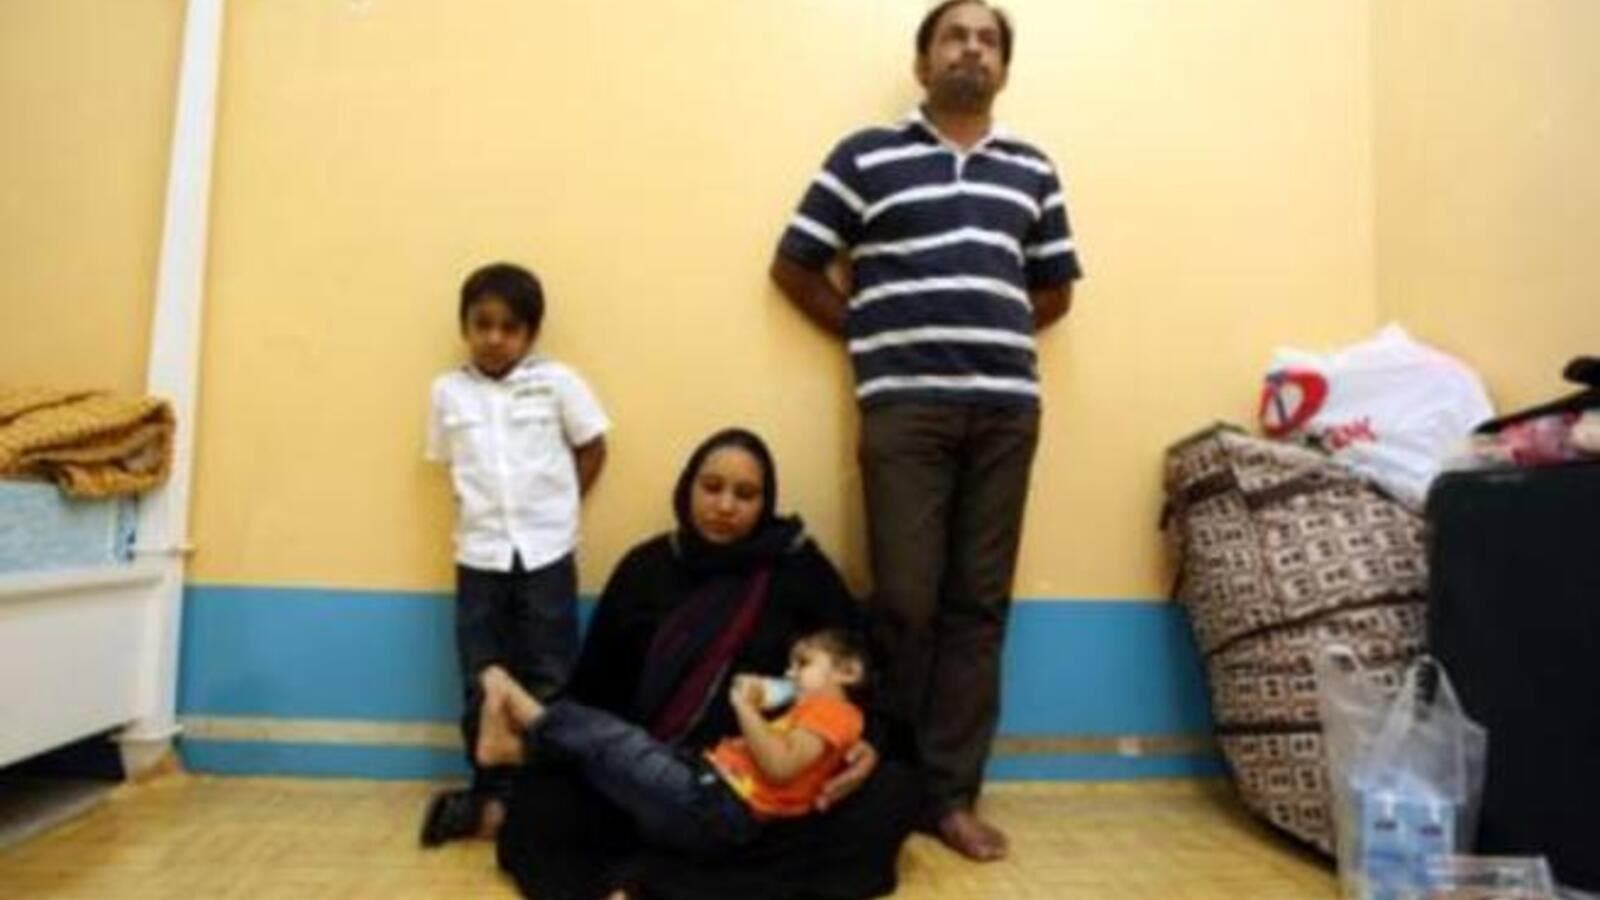 The starving family have begged authorities to put them in jail (Photo: Abdel-Krim Kallouche)